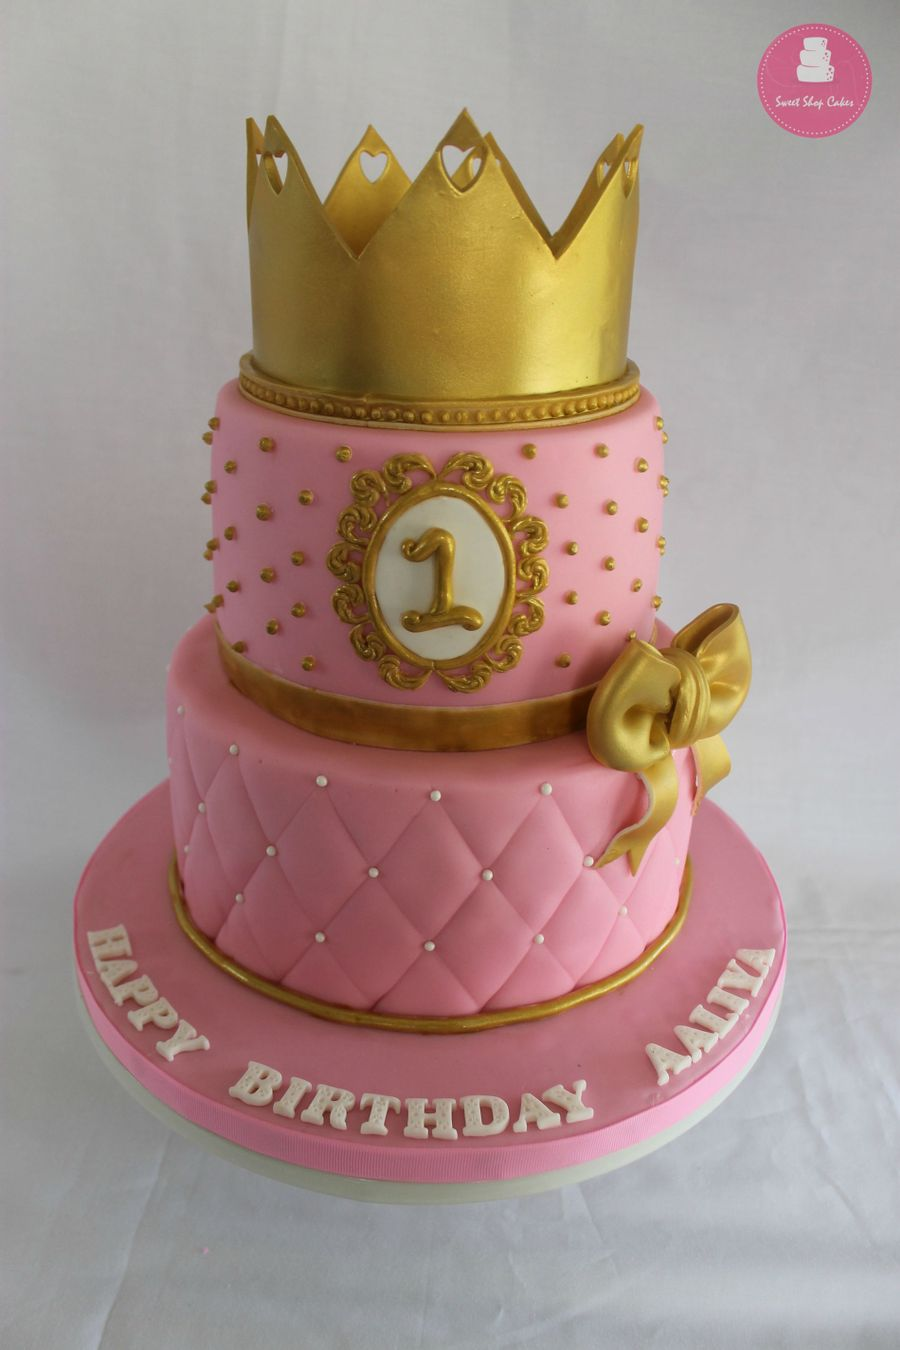 Stupendous Princess Themed Birthday Cake Cakecentral Com Personalised Birthday Cards Veneteletsinfo